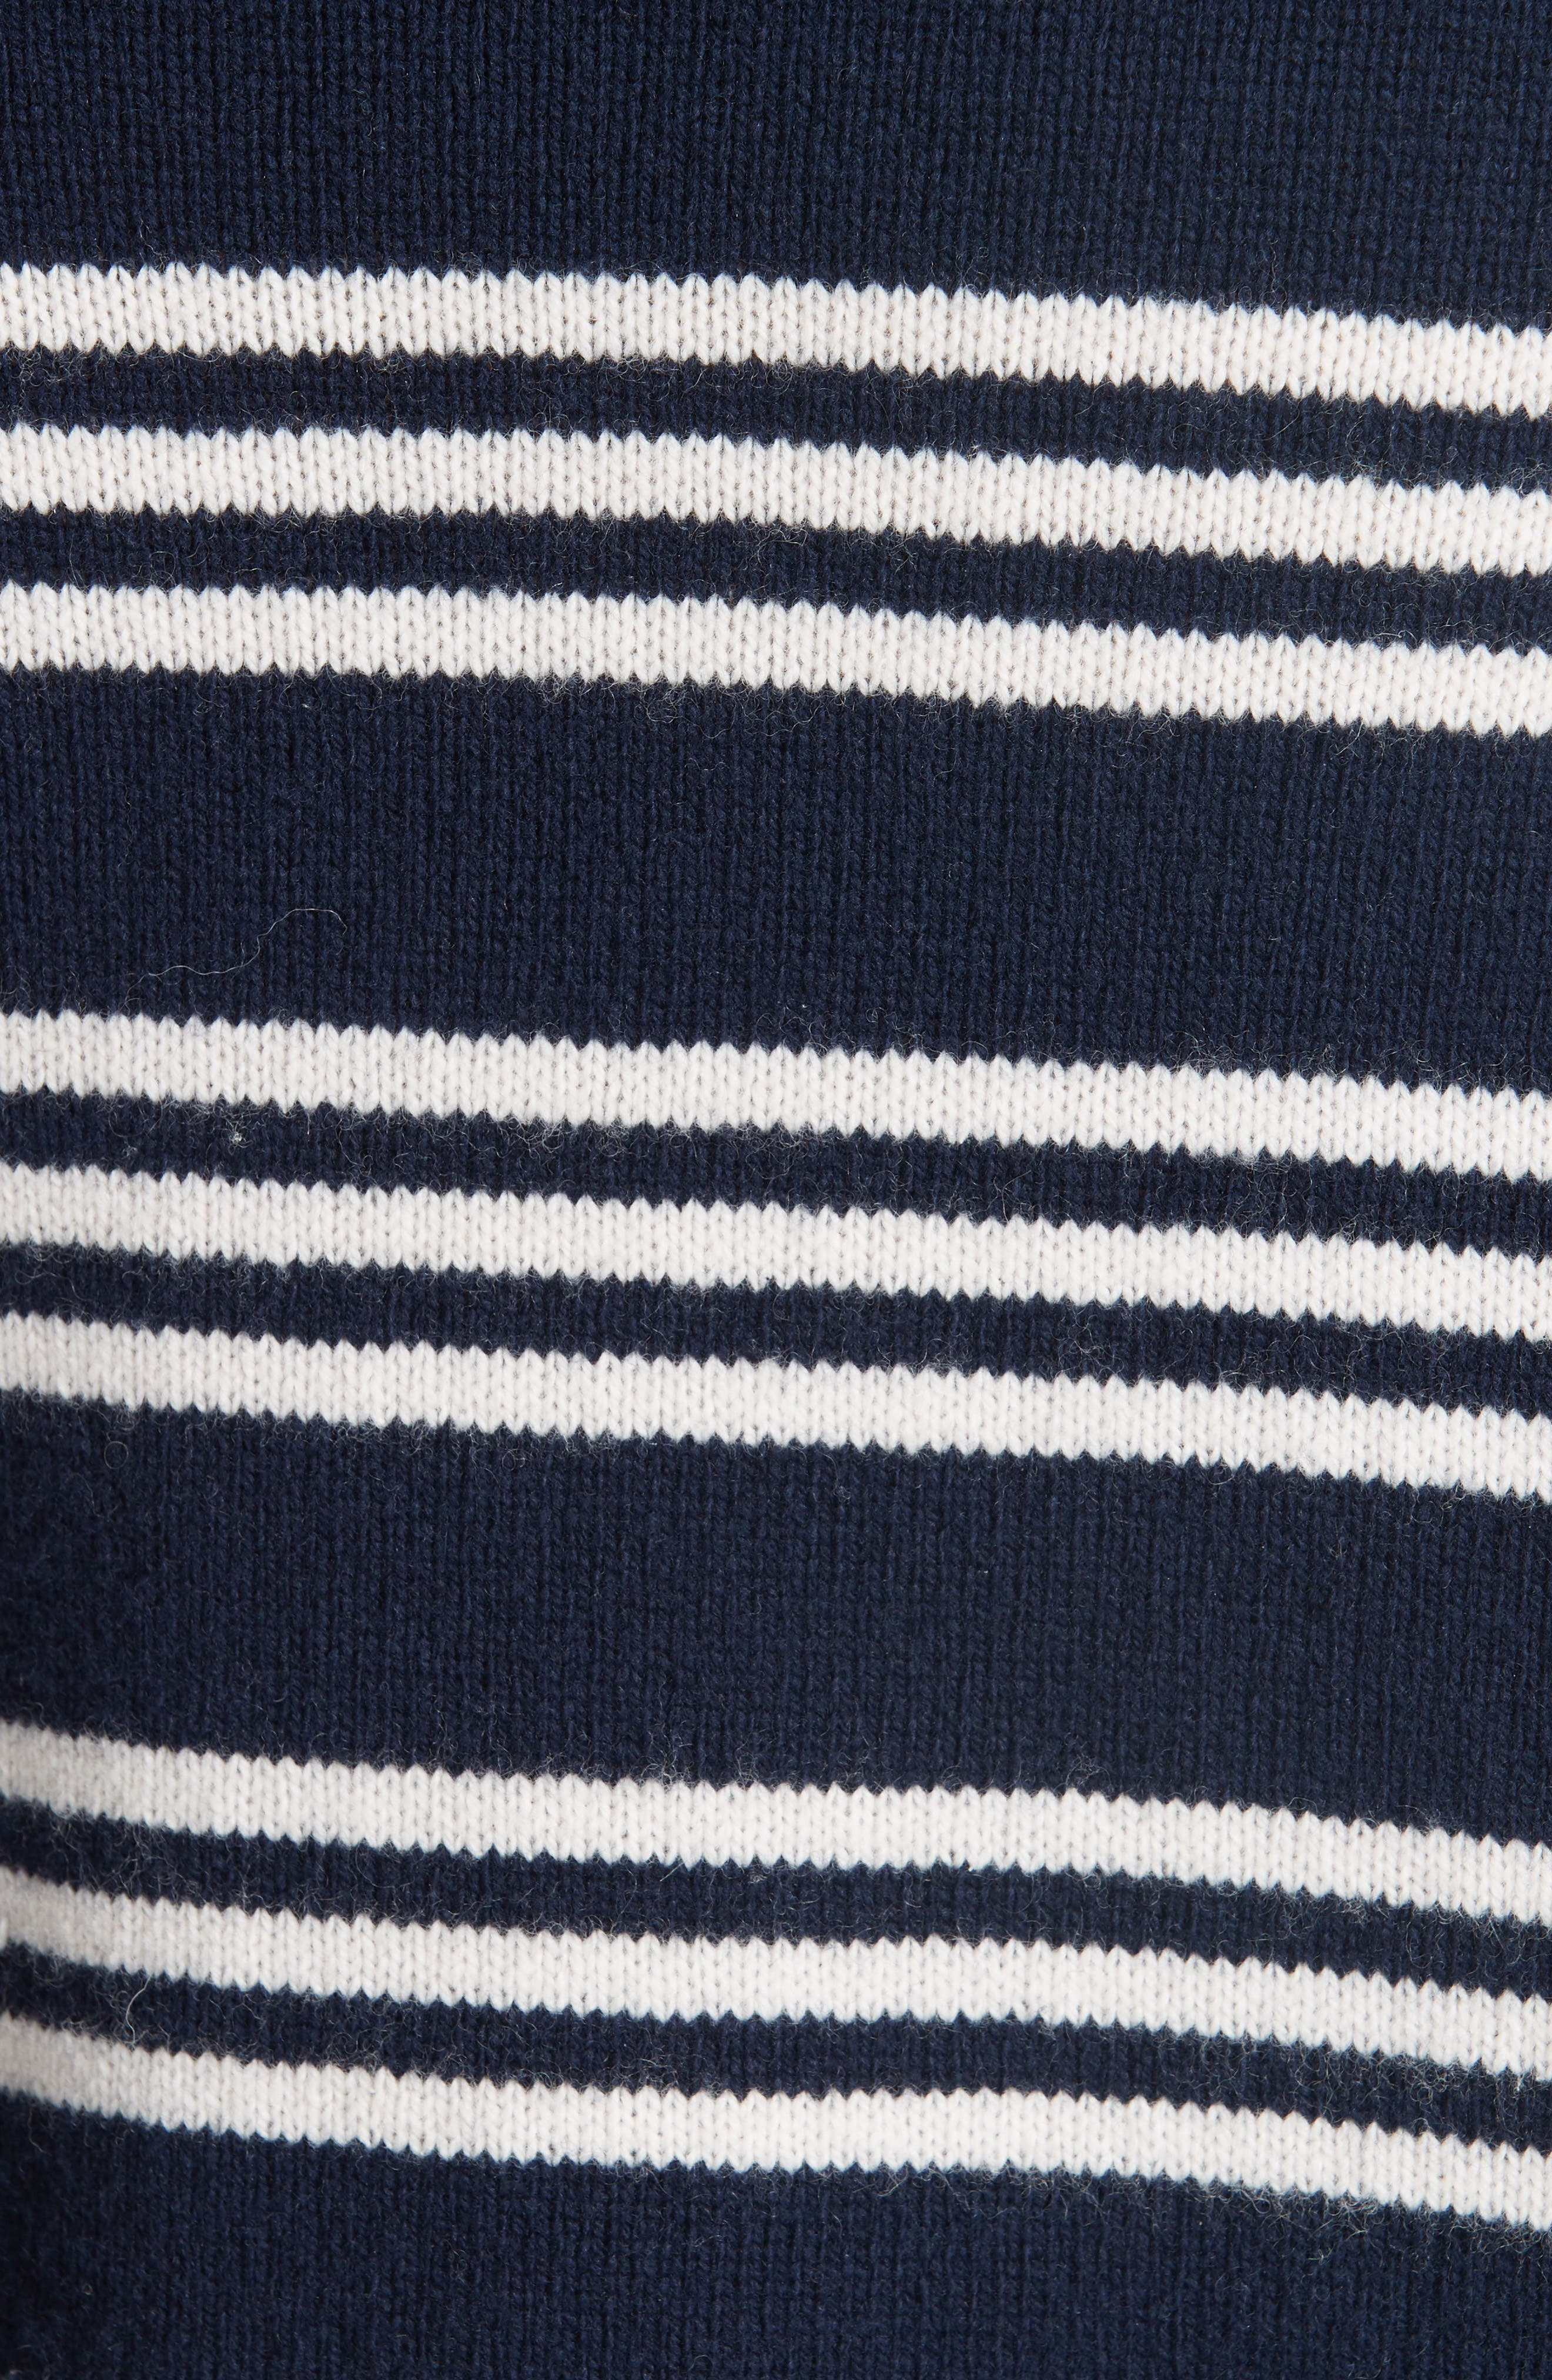 Striped Wool Cotton Blend Blouson Sleeve Sweater,                             Alternate thumbnail 5, color,                             NAVY COMBO